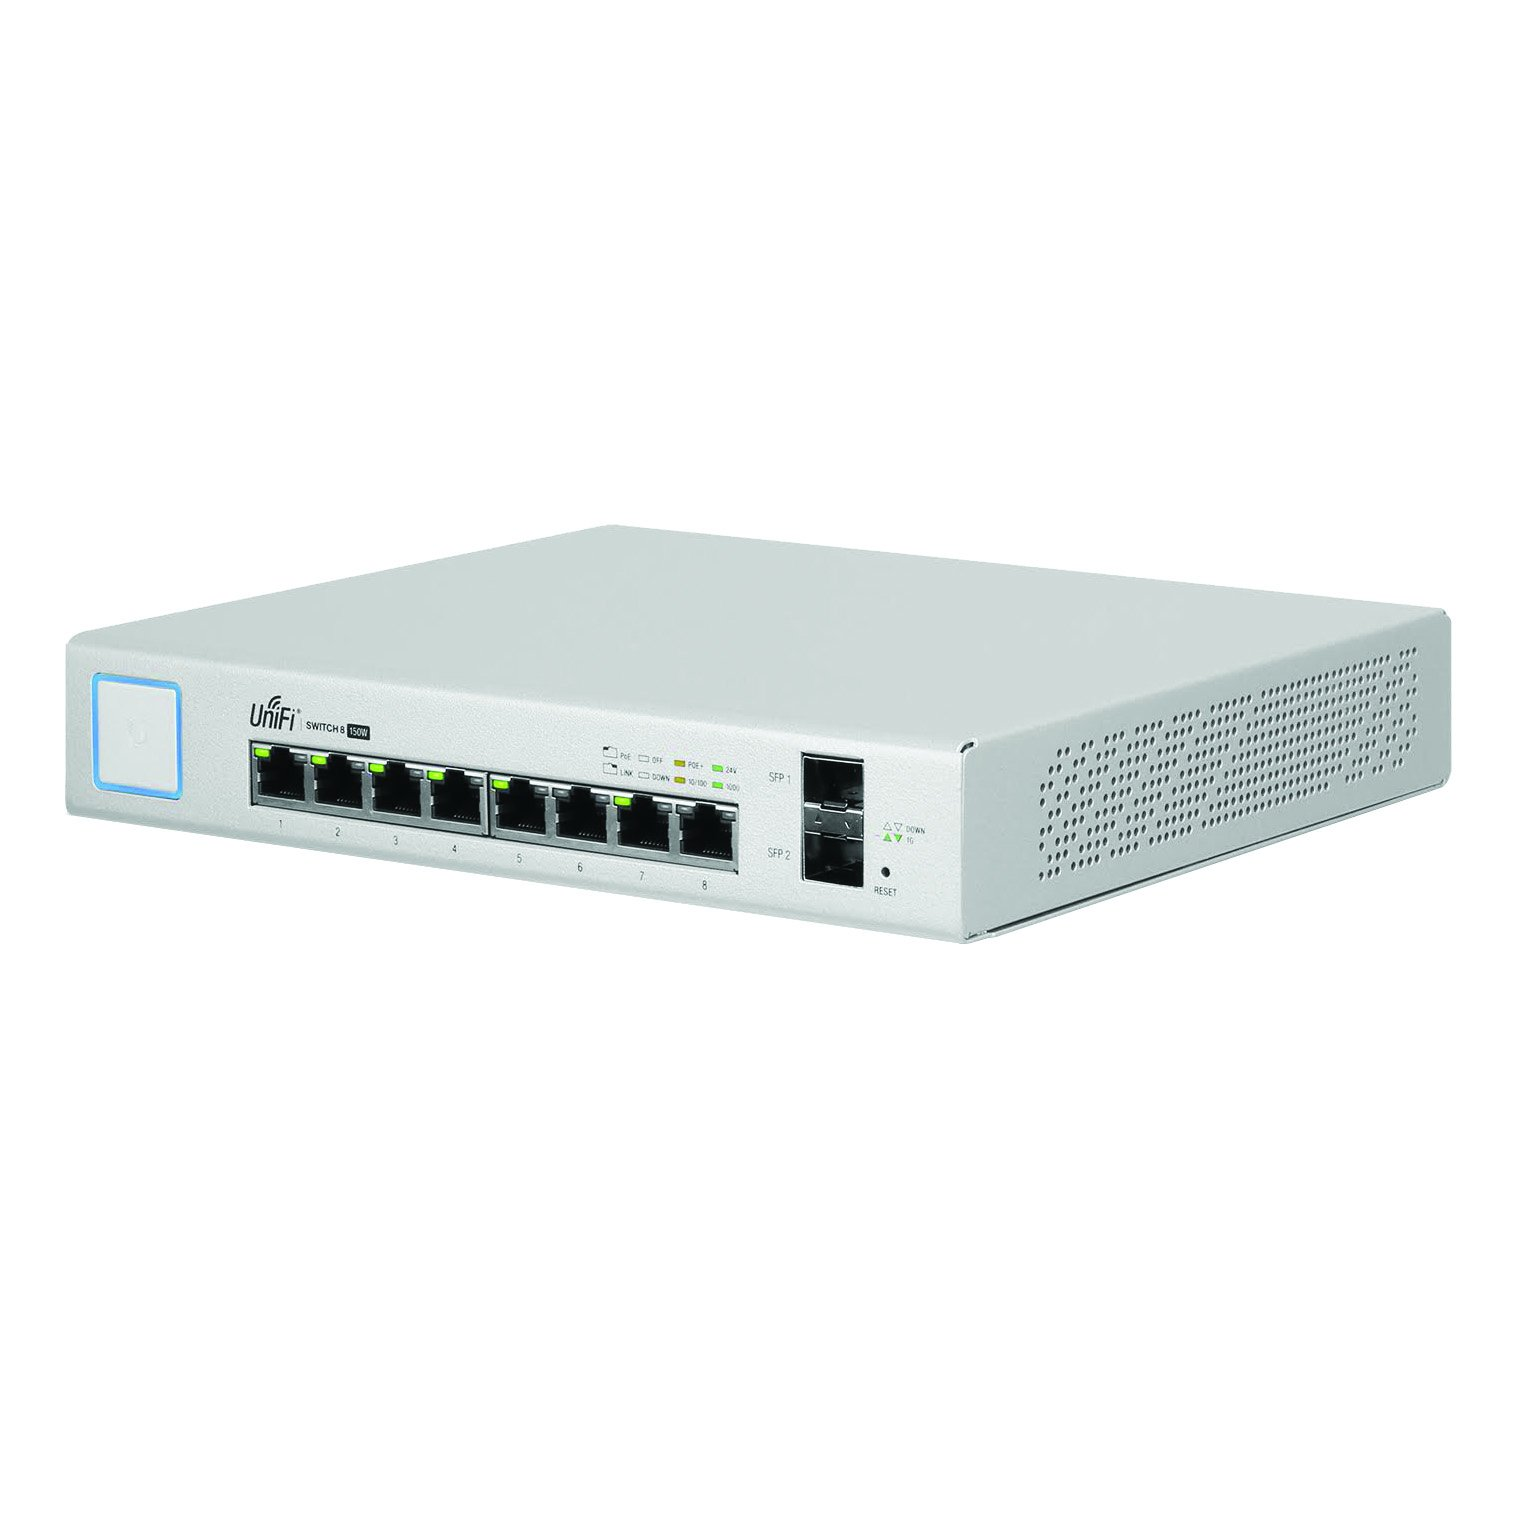 Ubiquiti Networks Networks UniFi Switch 8-Port 150 Watts by Ubiquiti Networks